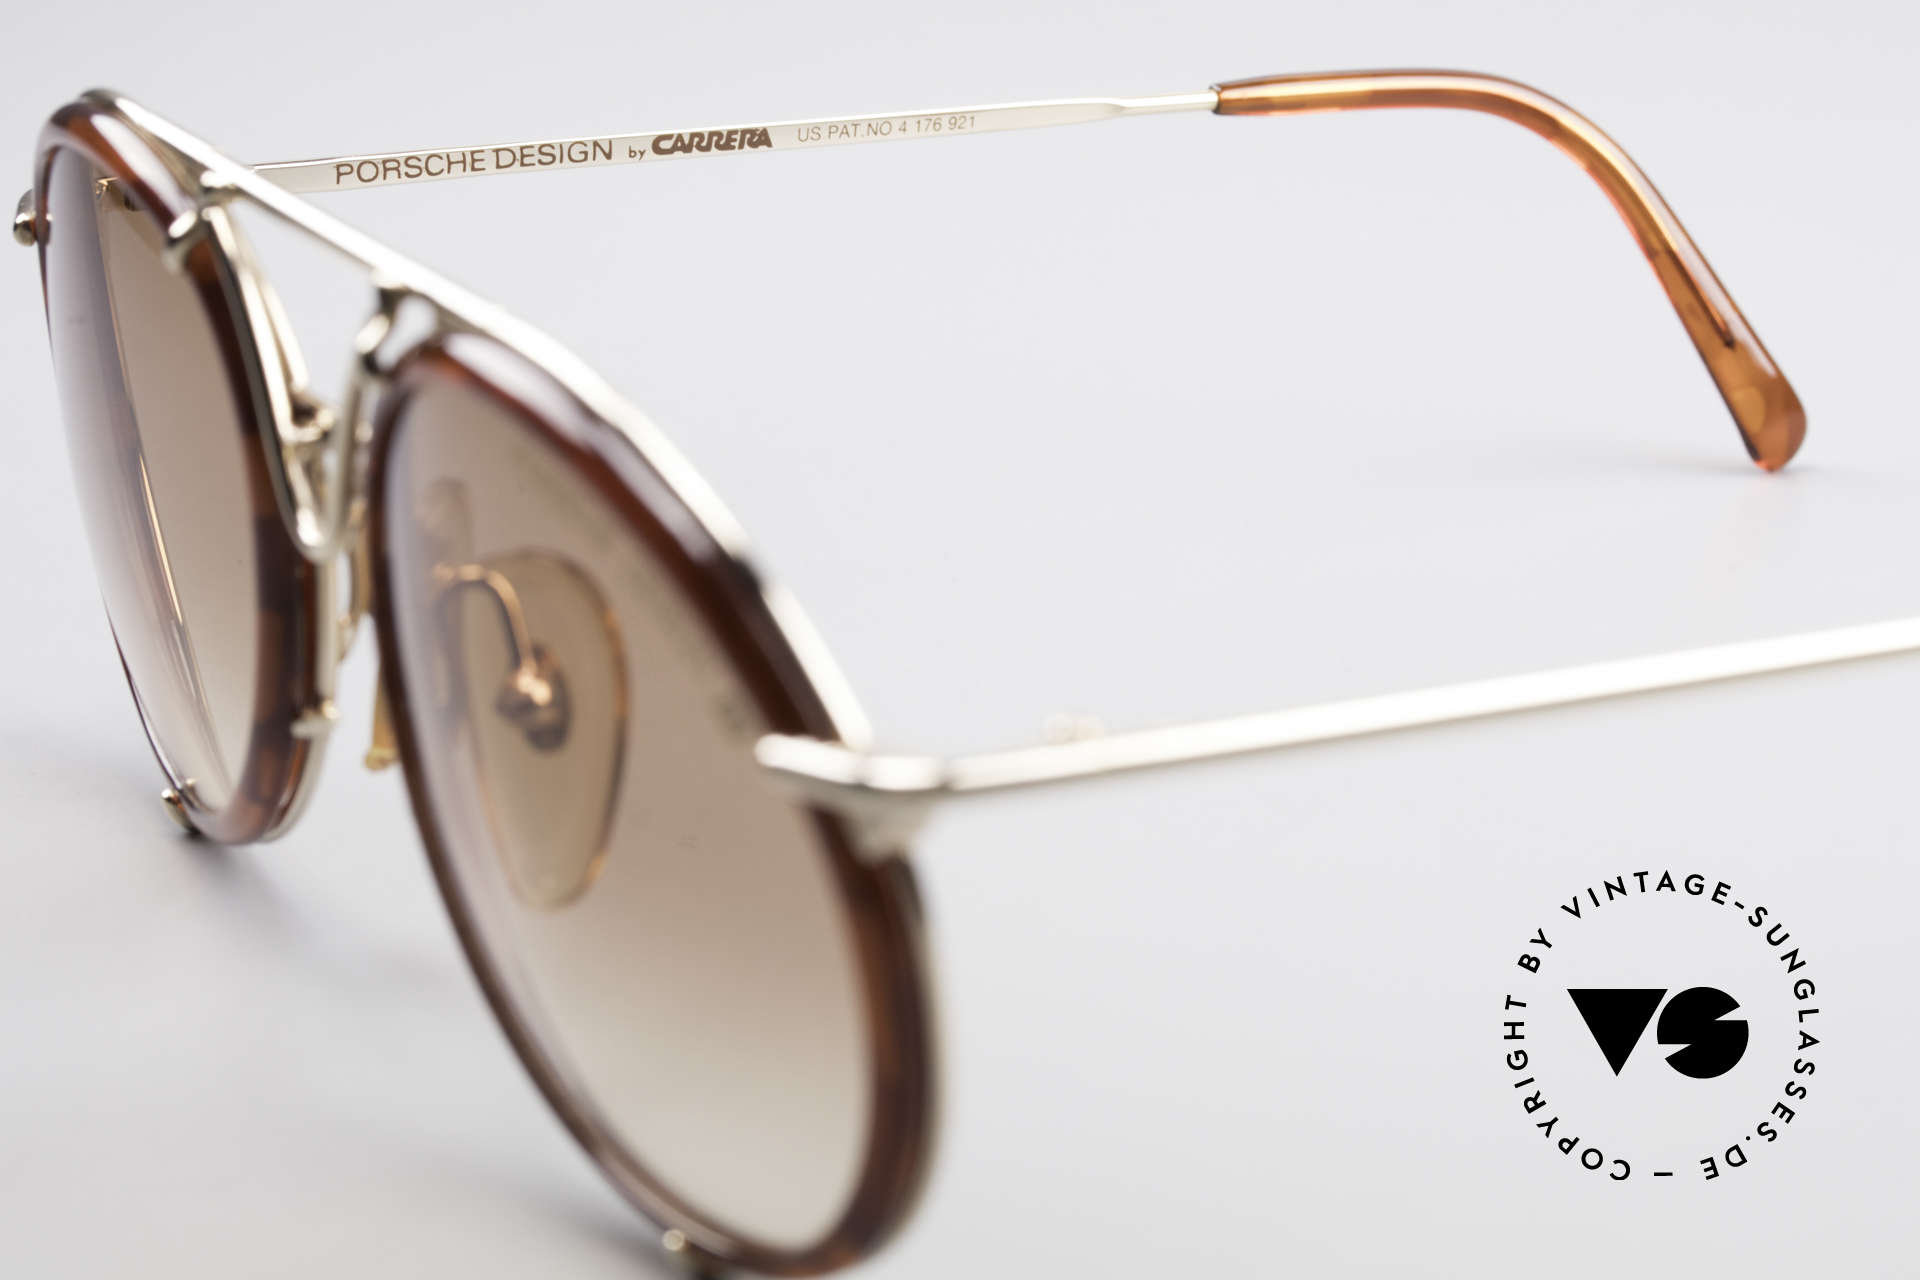 Porsche 5661 Classic 90's Sunglasses Round, the sun lenses could be replaced with prescriptions, Made for Men and Women